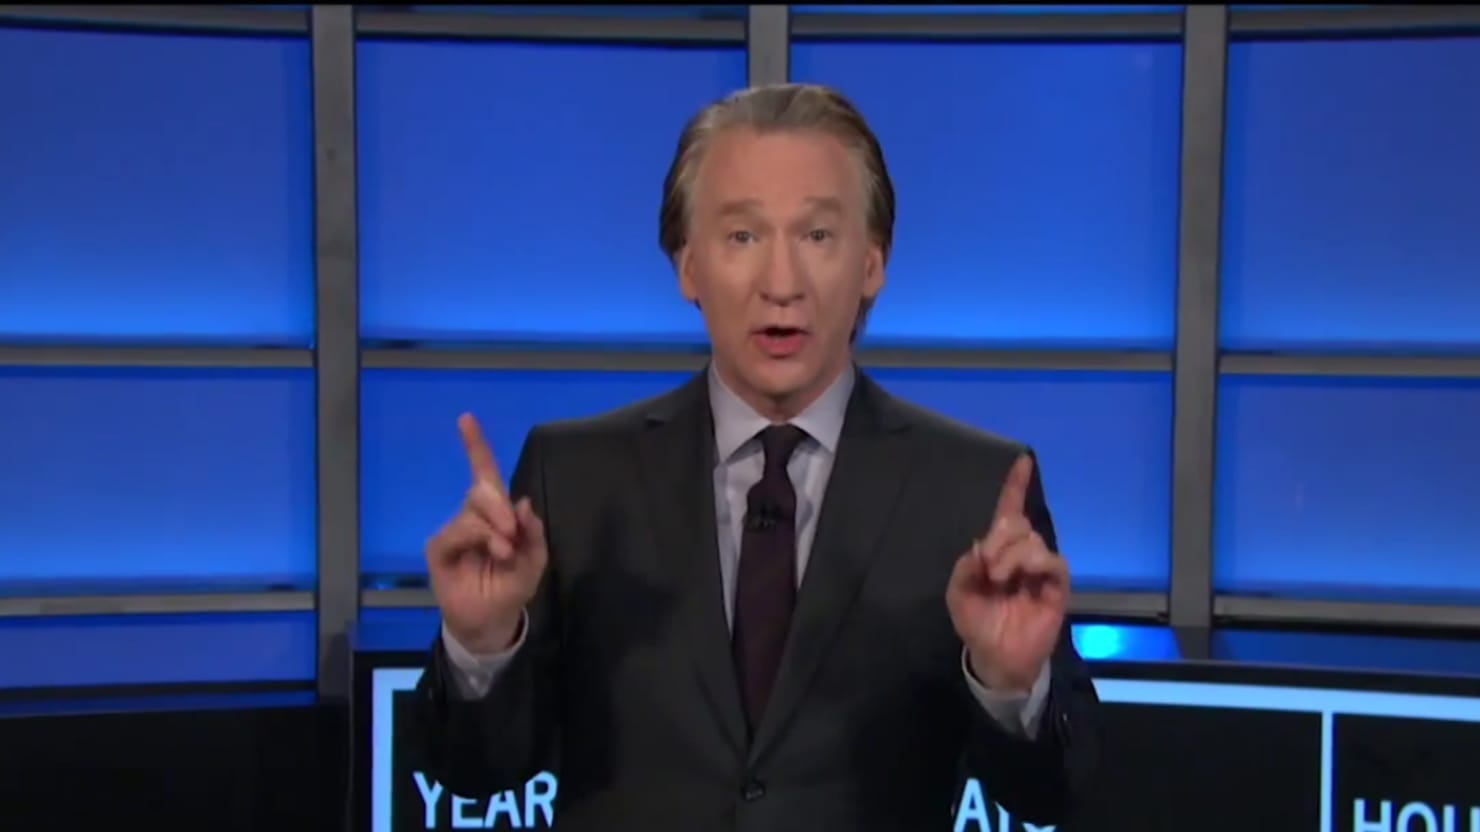 Bill Maher Doubles Down on Islam: 'Terrorists and the Mainstream Share A Lot of These Bad Ideas'